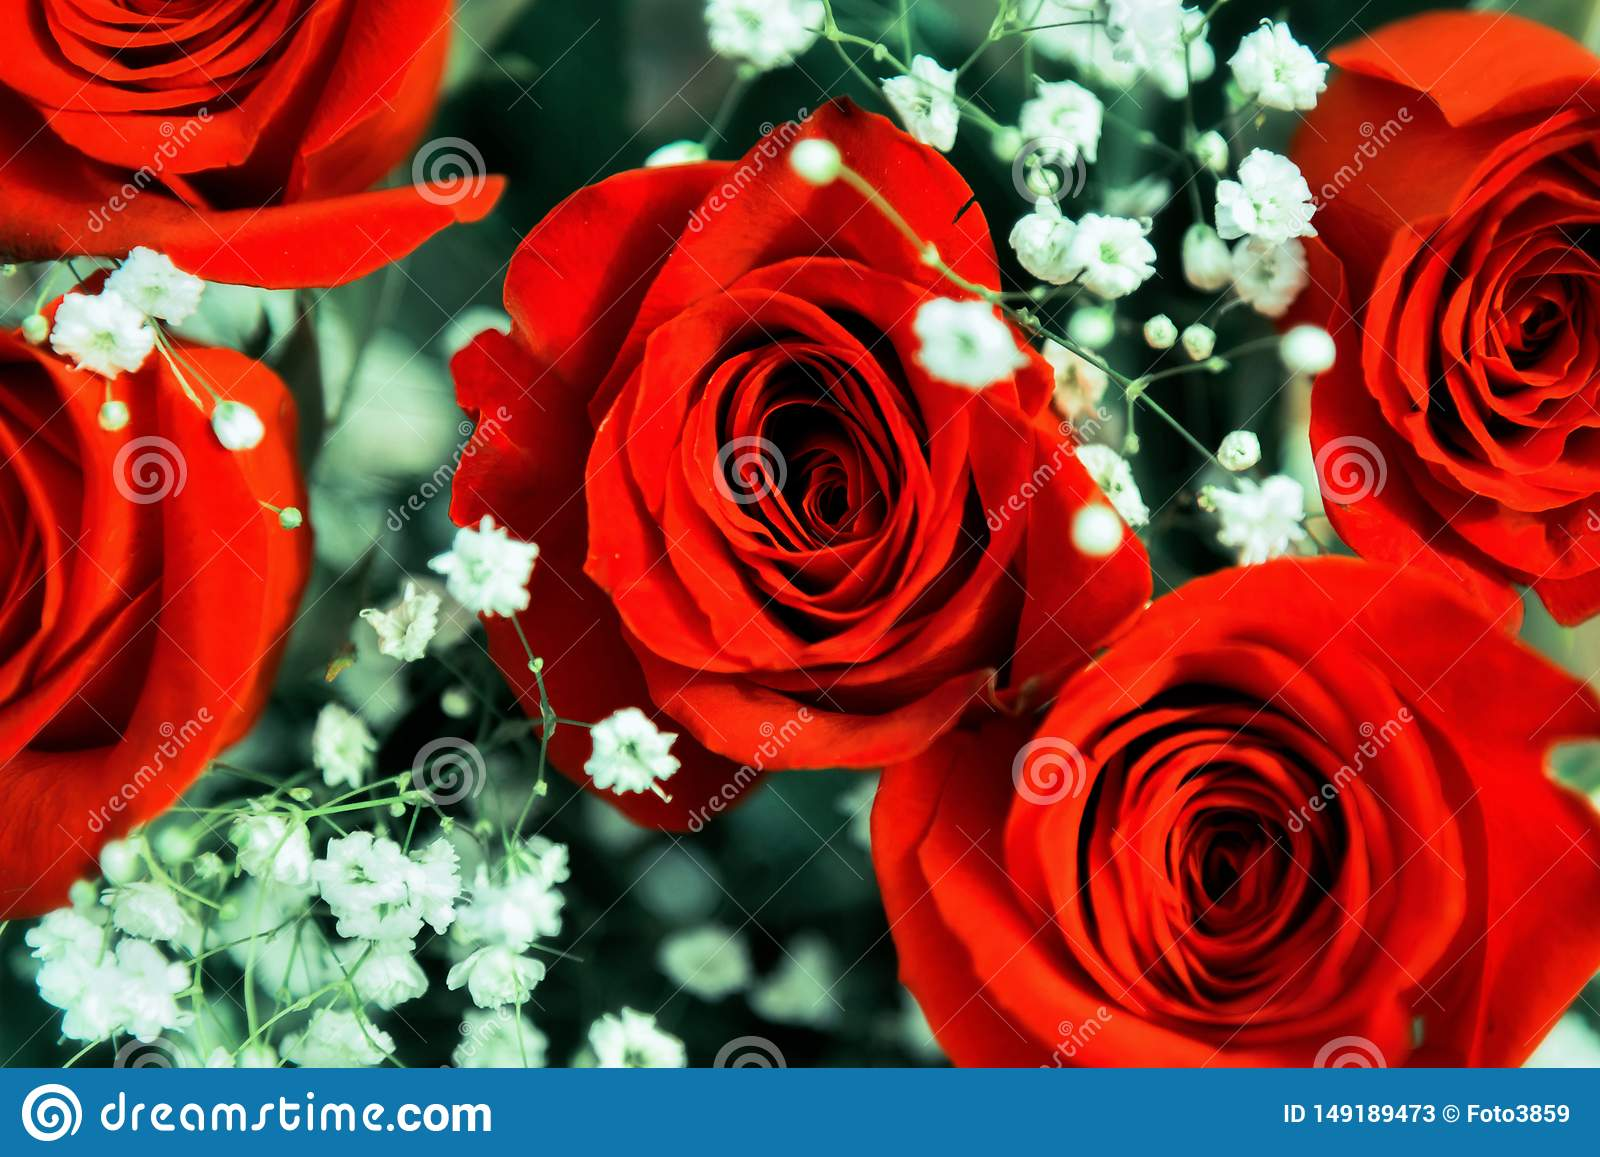 Beautiful festive bouquet of bright red roses